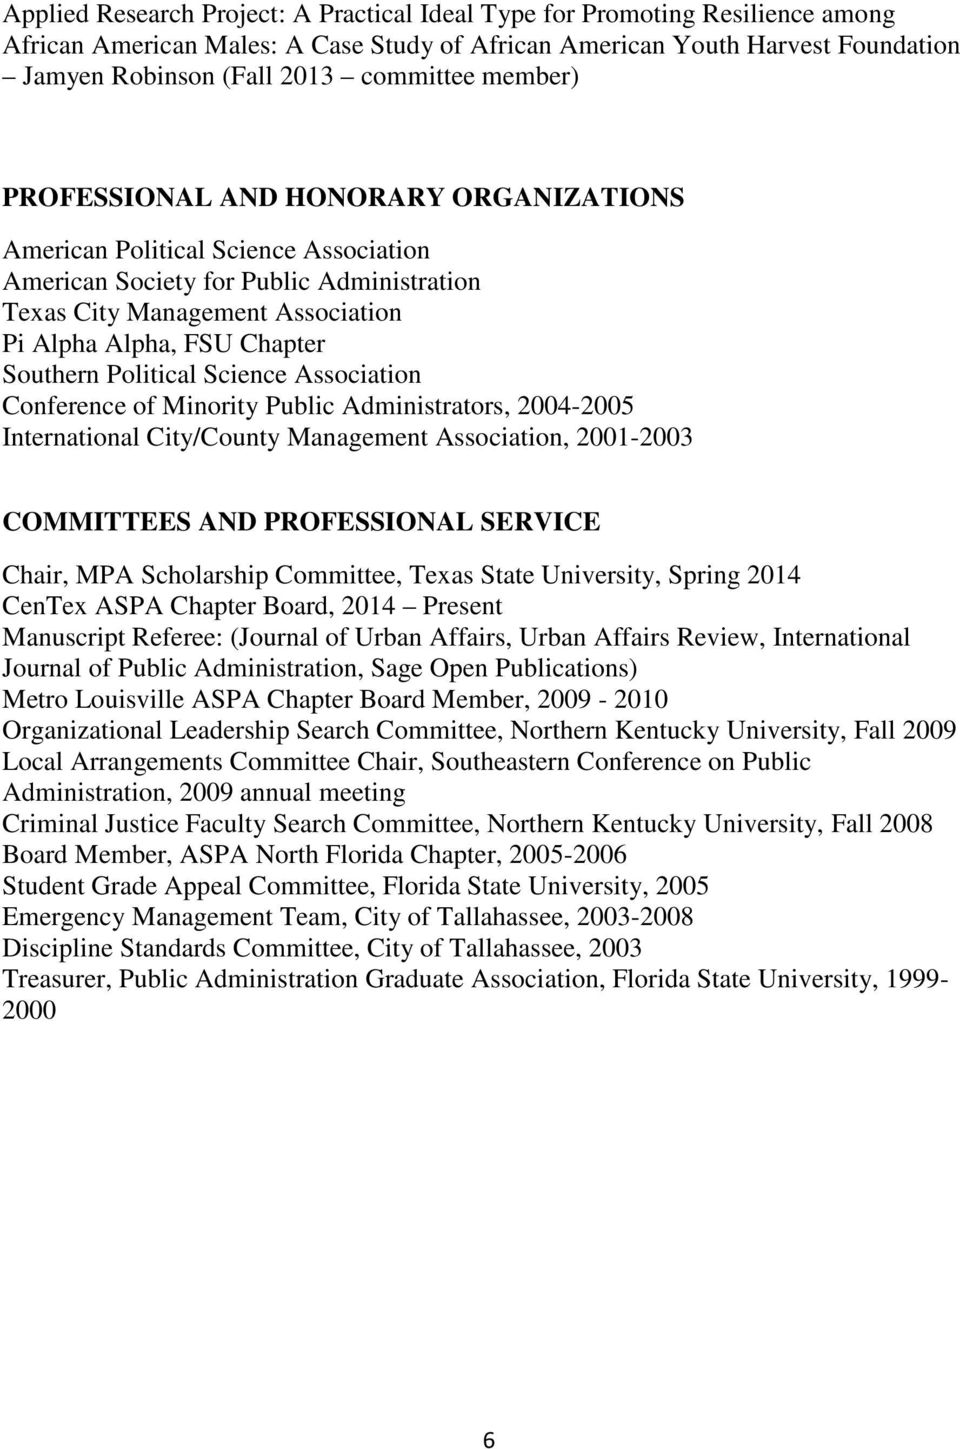 Southern Political Science Association Conference of Minority Public Administrators, 2004-2005 International City/County Management Association, 2001-2003 COMMITTEES AND PROFESSIONAL SERVICE Chair,